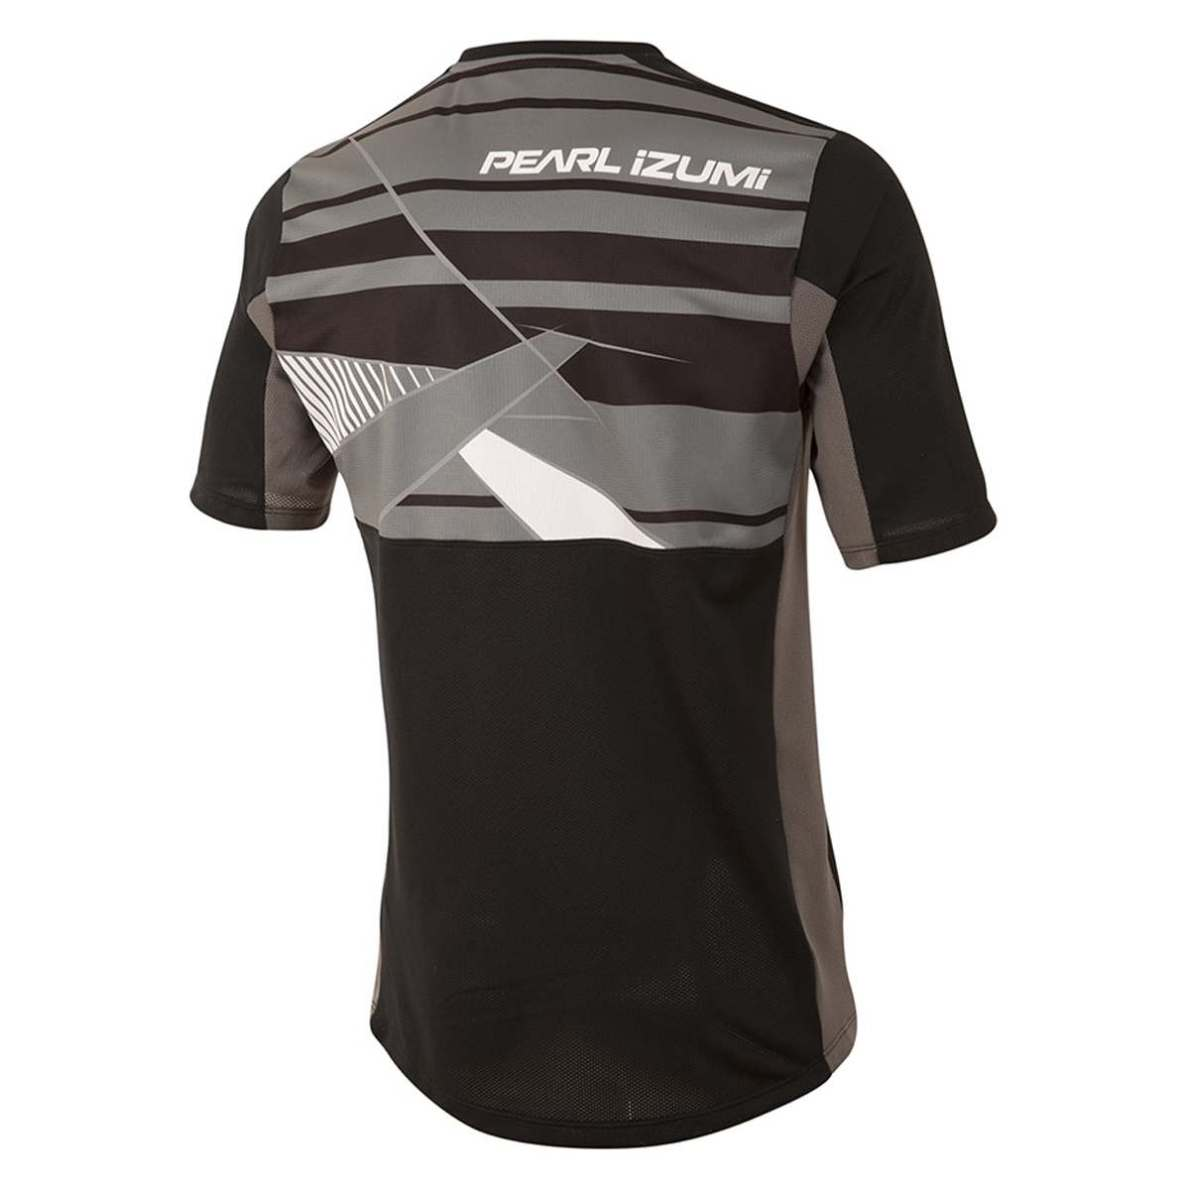 Launch Jersey